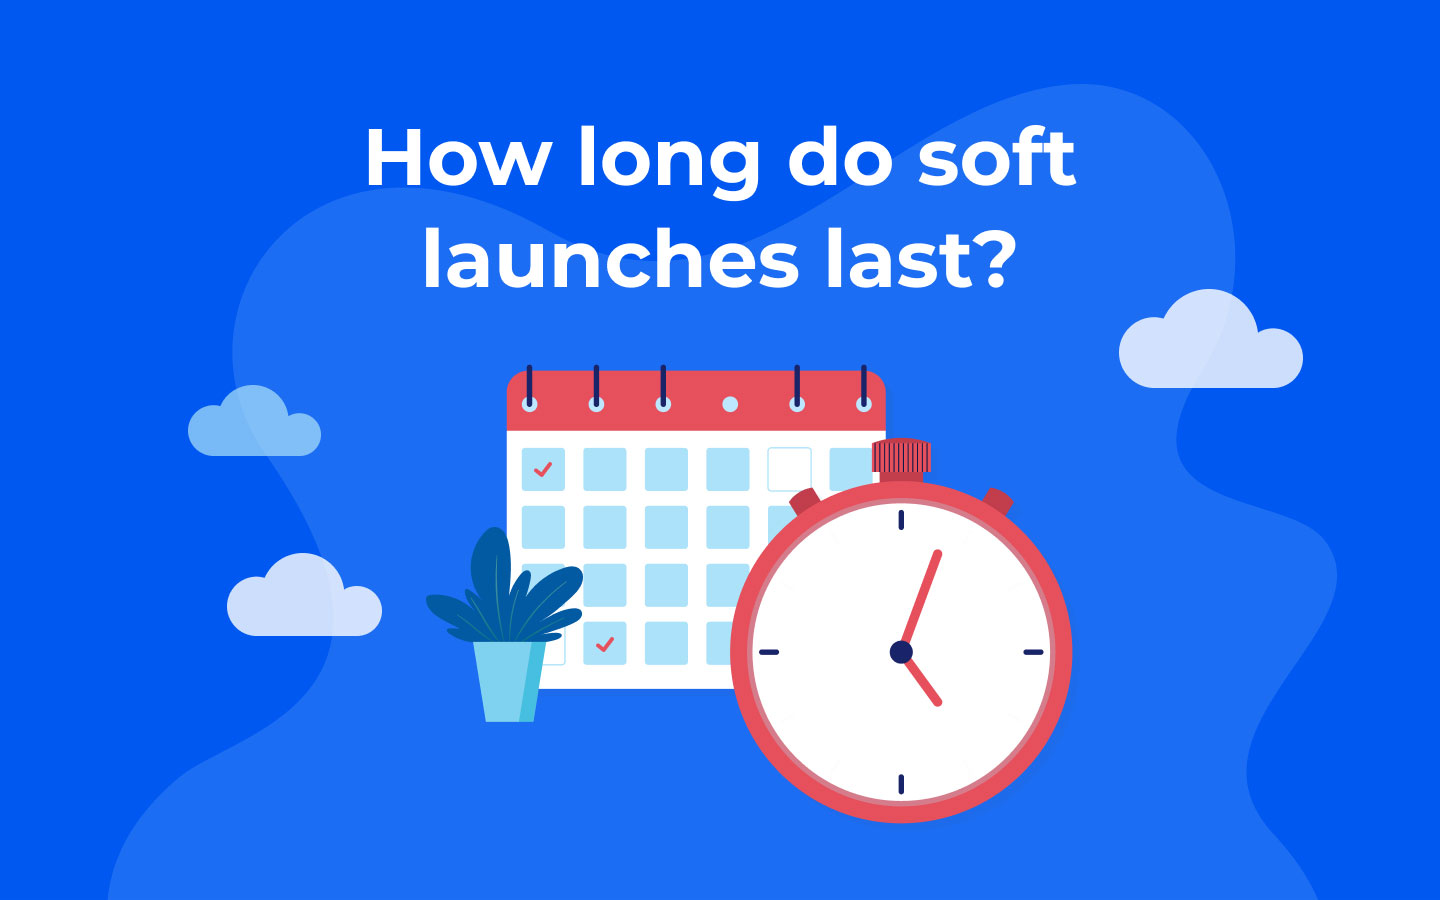 How long do soft launches last